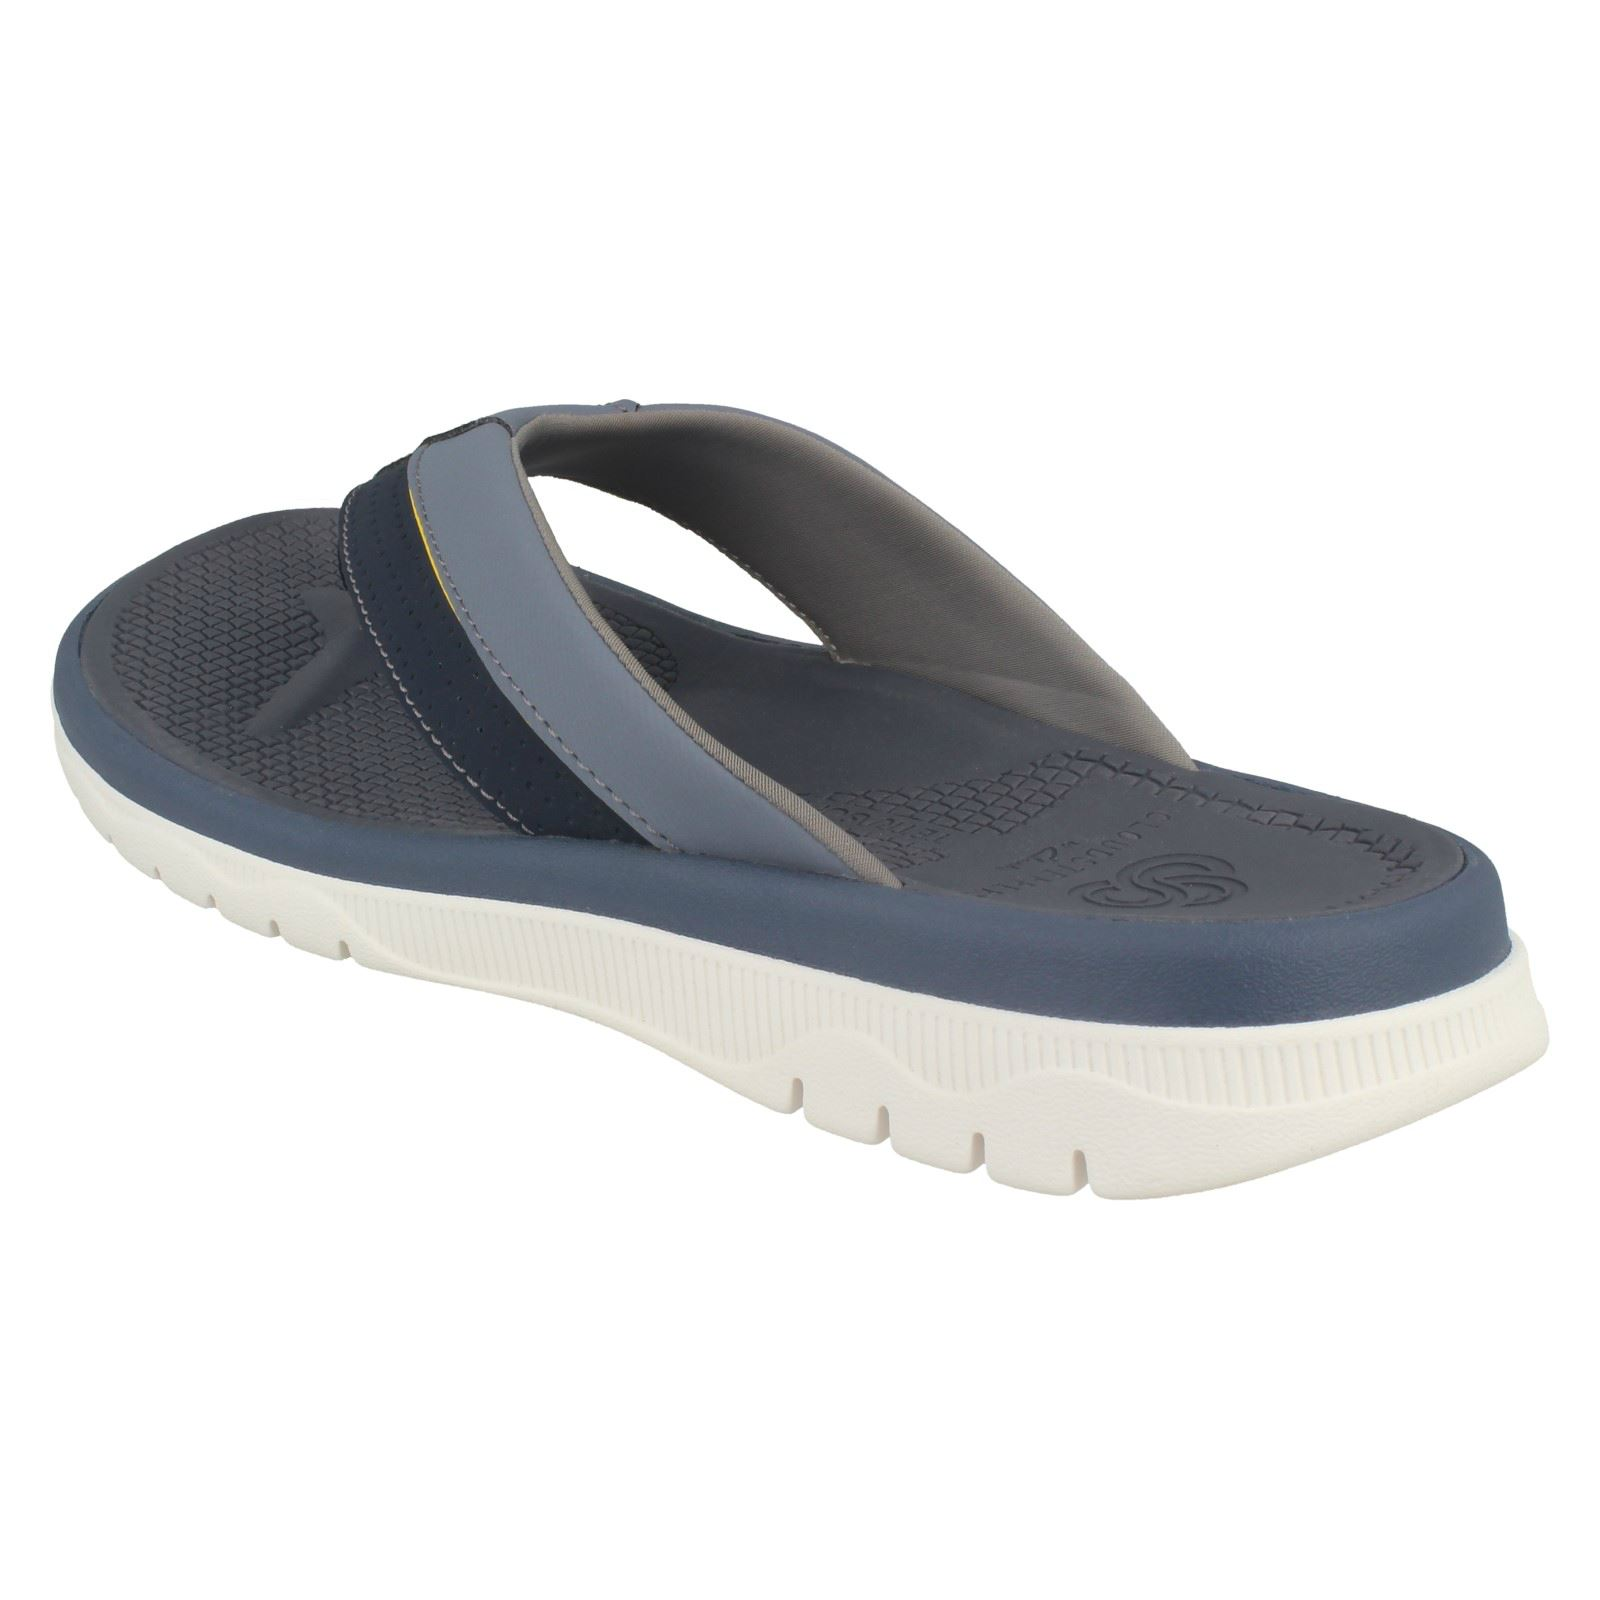 Mens Slip Cloudsteppers by Clarks Toe Post Slip Mens On Sandals Balta Sun 28b3ae